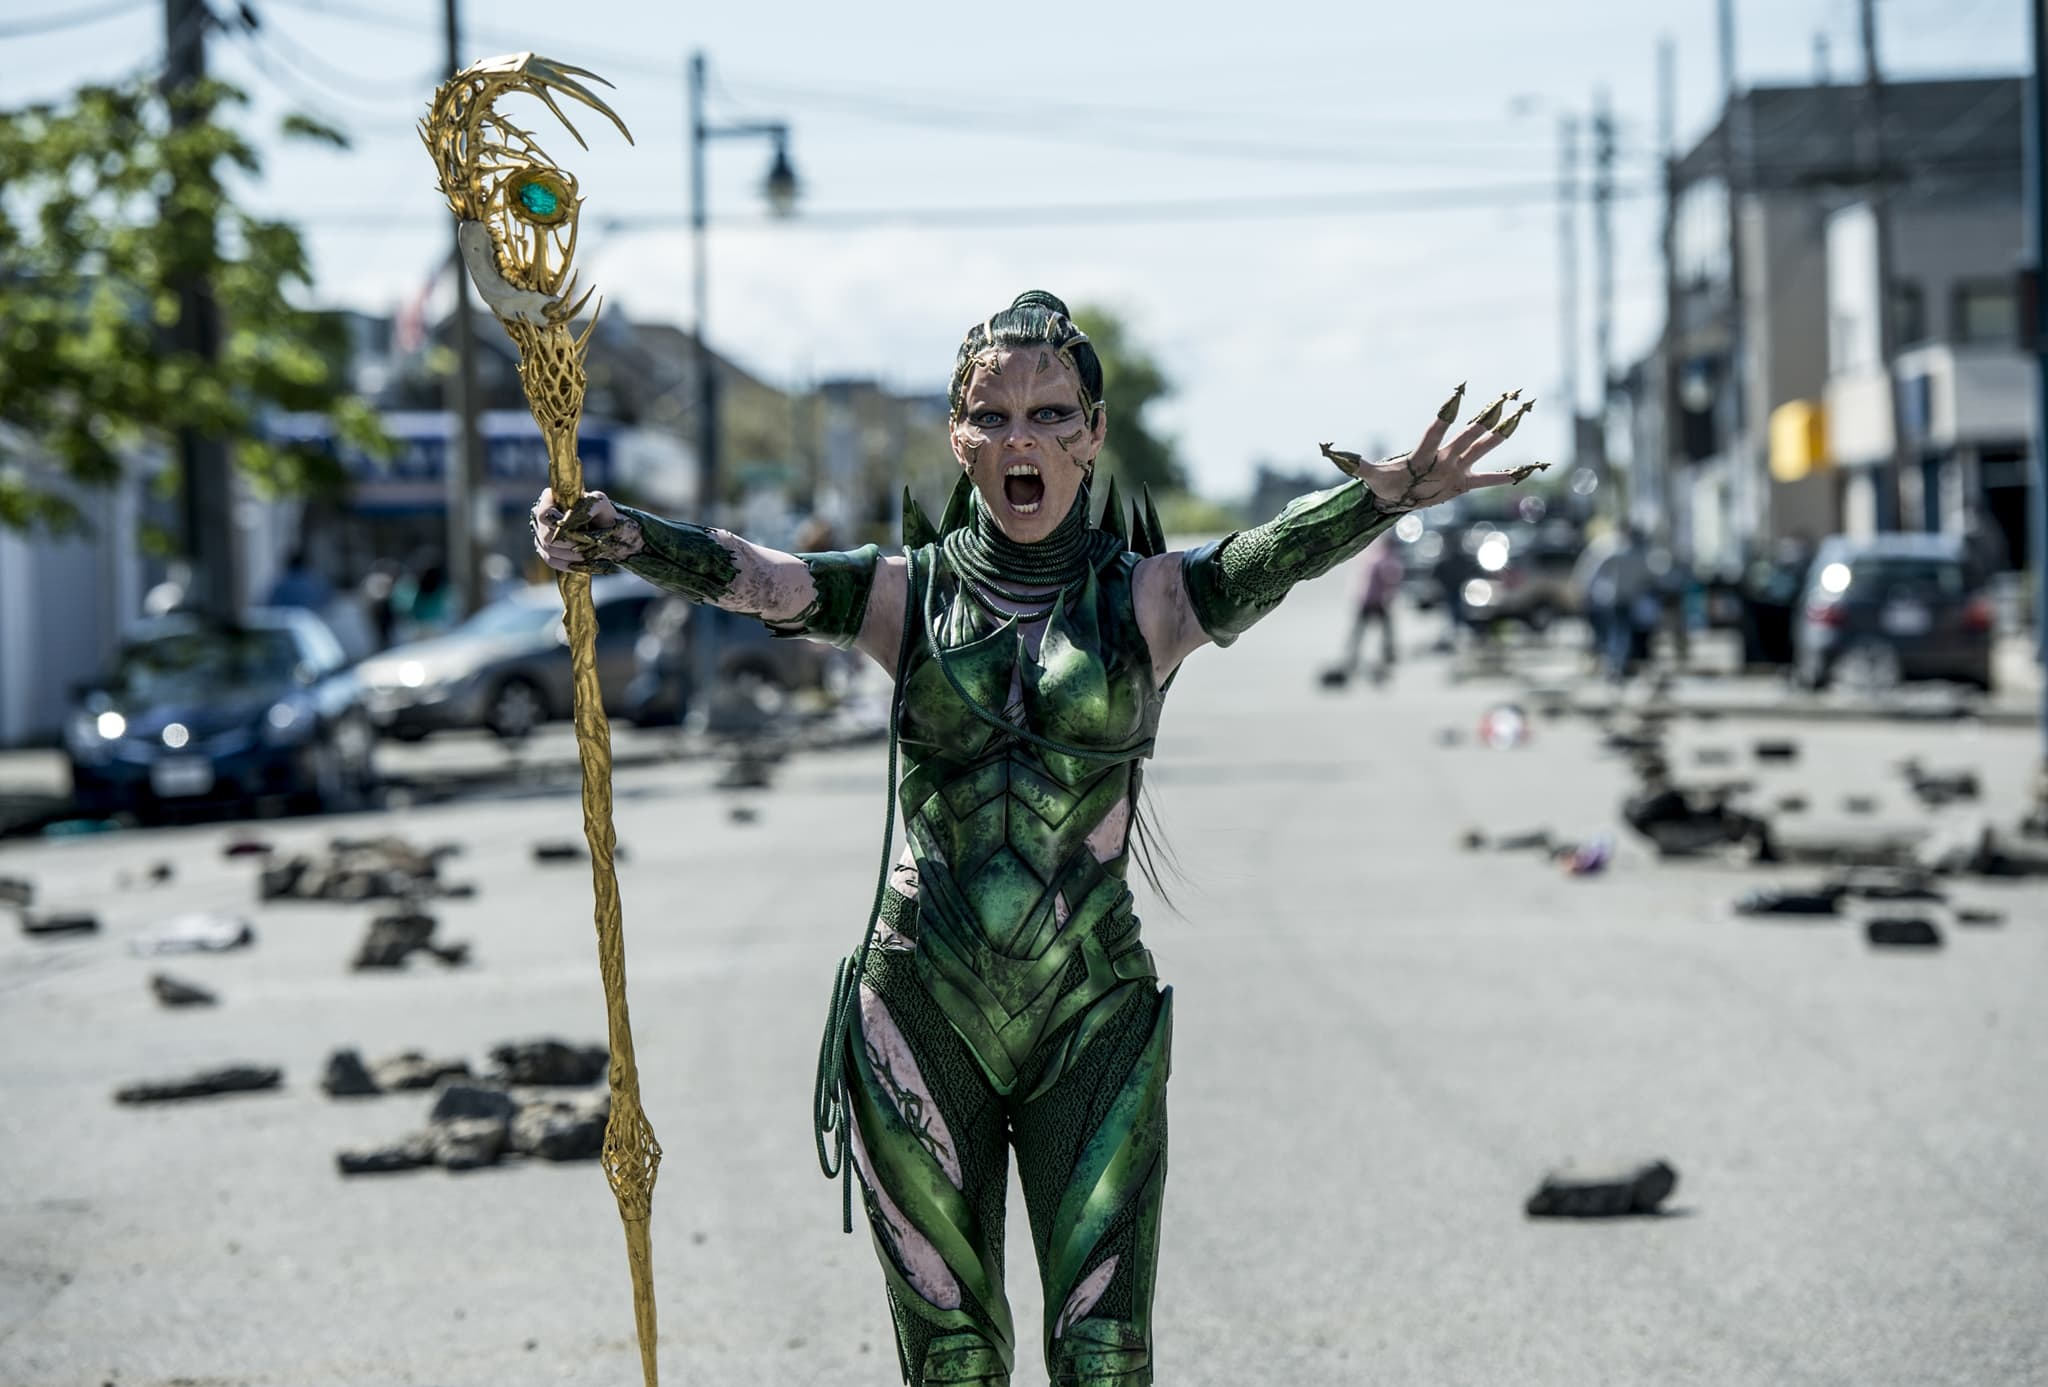 Elizabeth Banks was nominated for Choice Movie Villain at the 2017 Teen Choice Awards